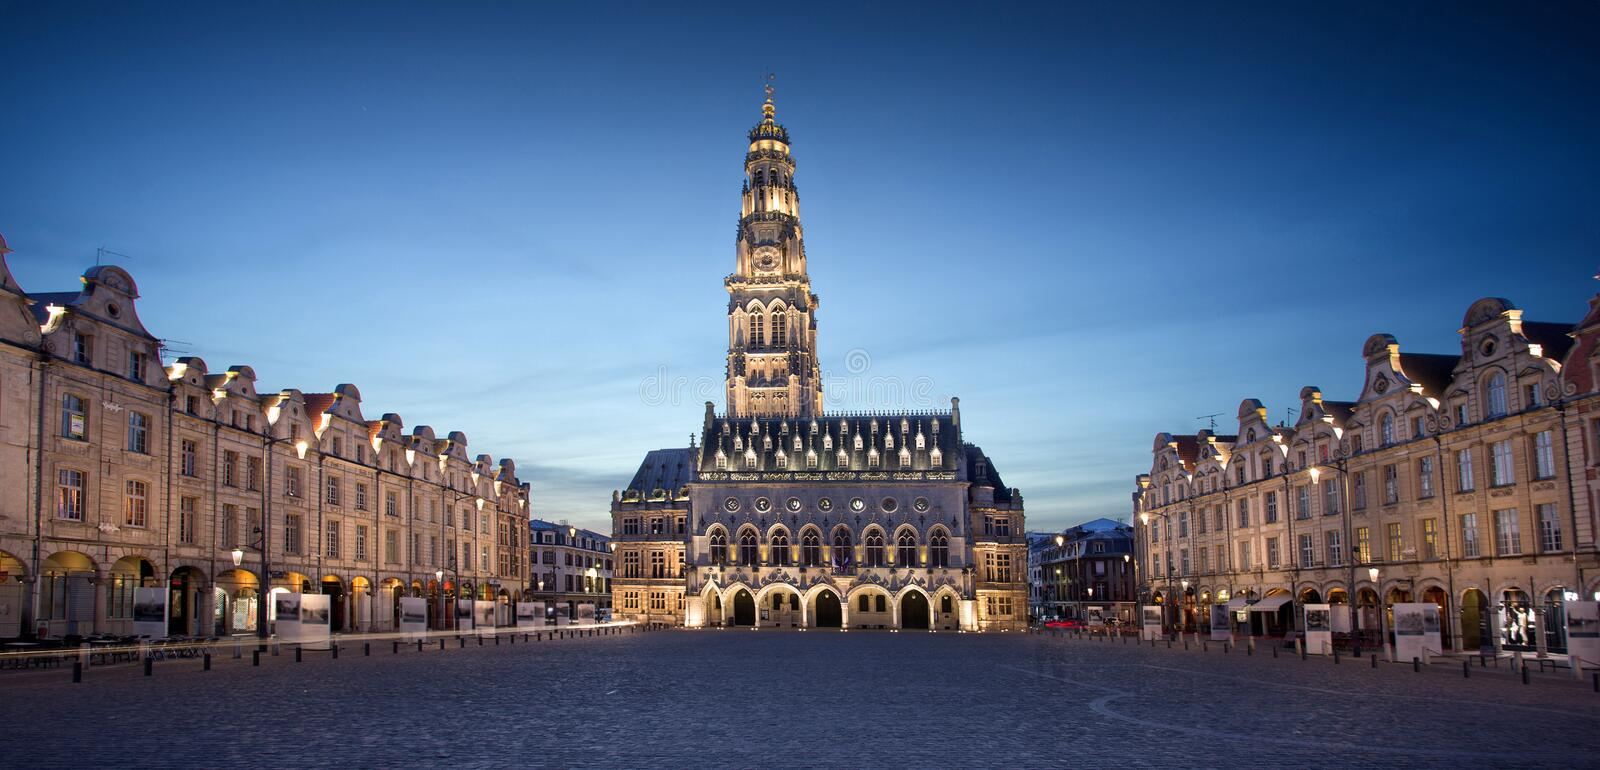 The heroes place in Arras, France. View of the The heroes place in Arras, France stock image